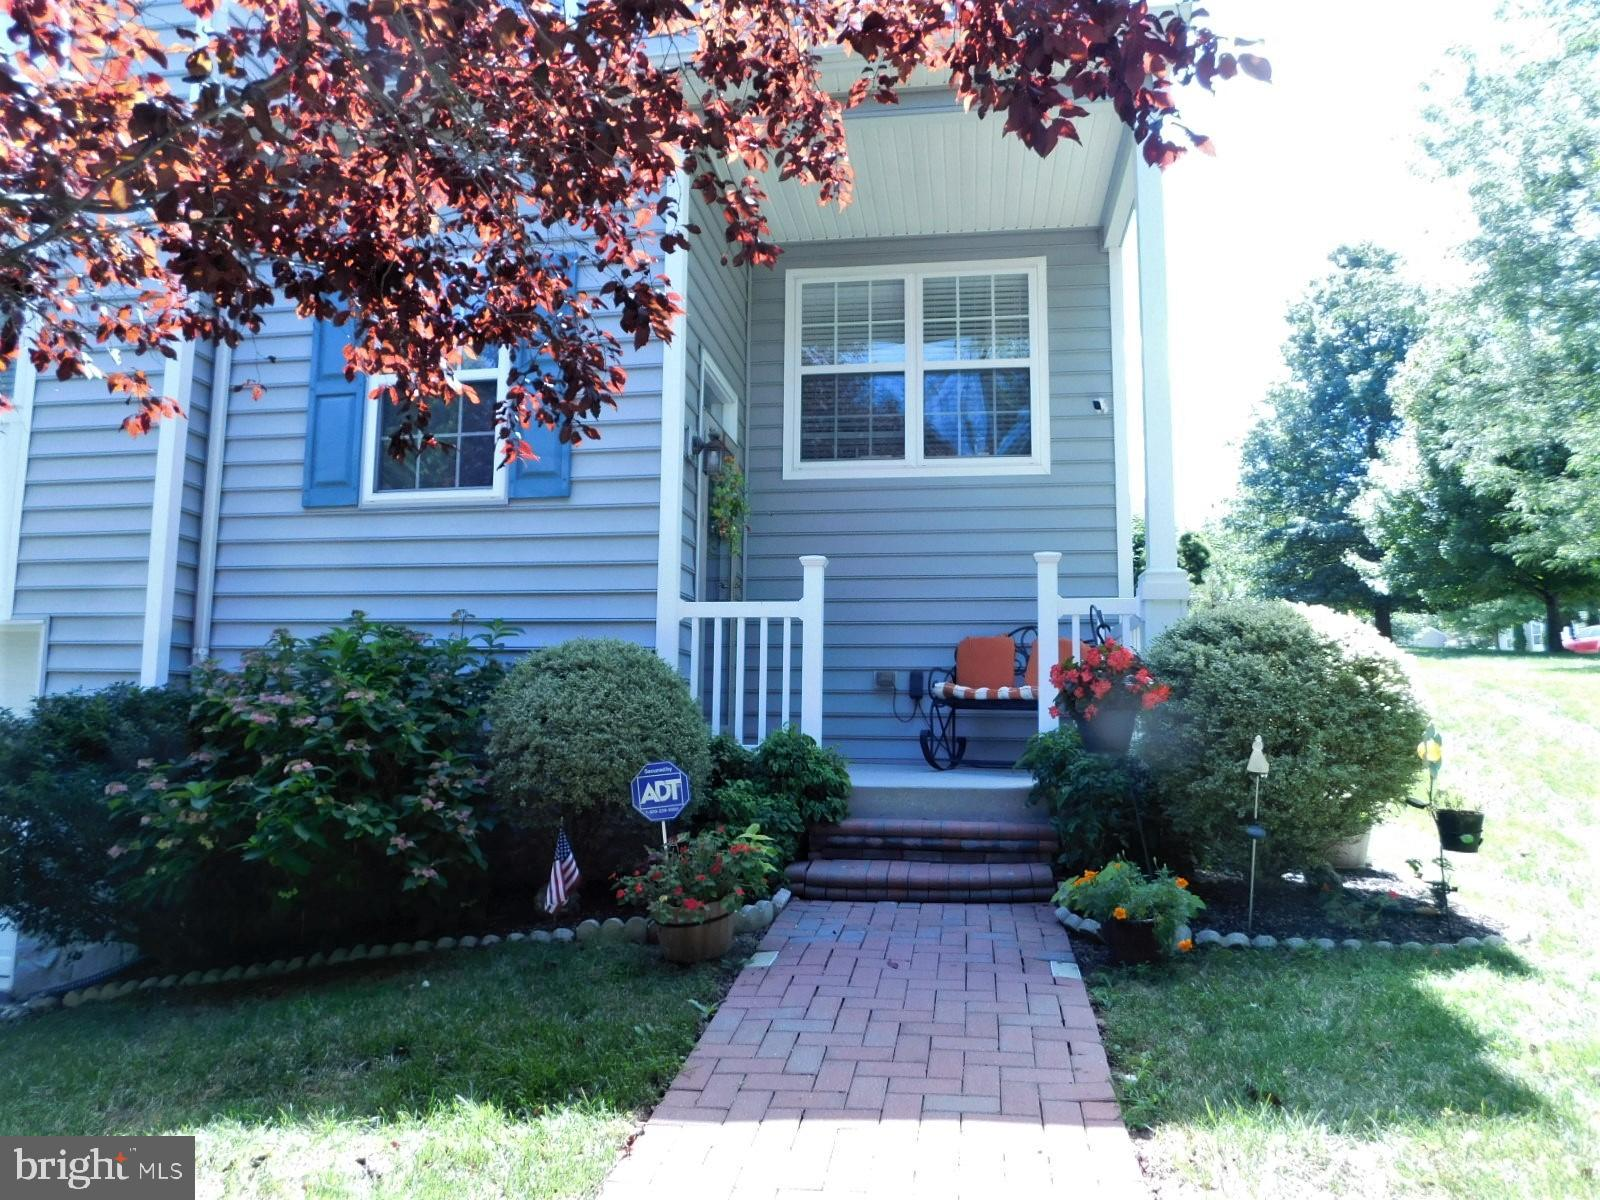 709 W 14TH STREET, CHESTER, PA 19013